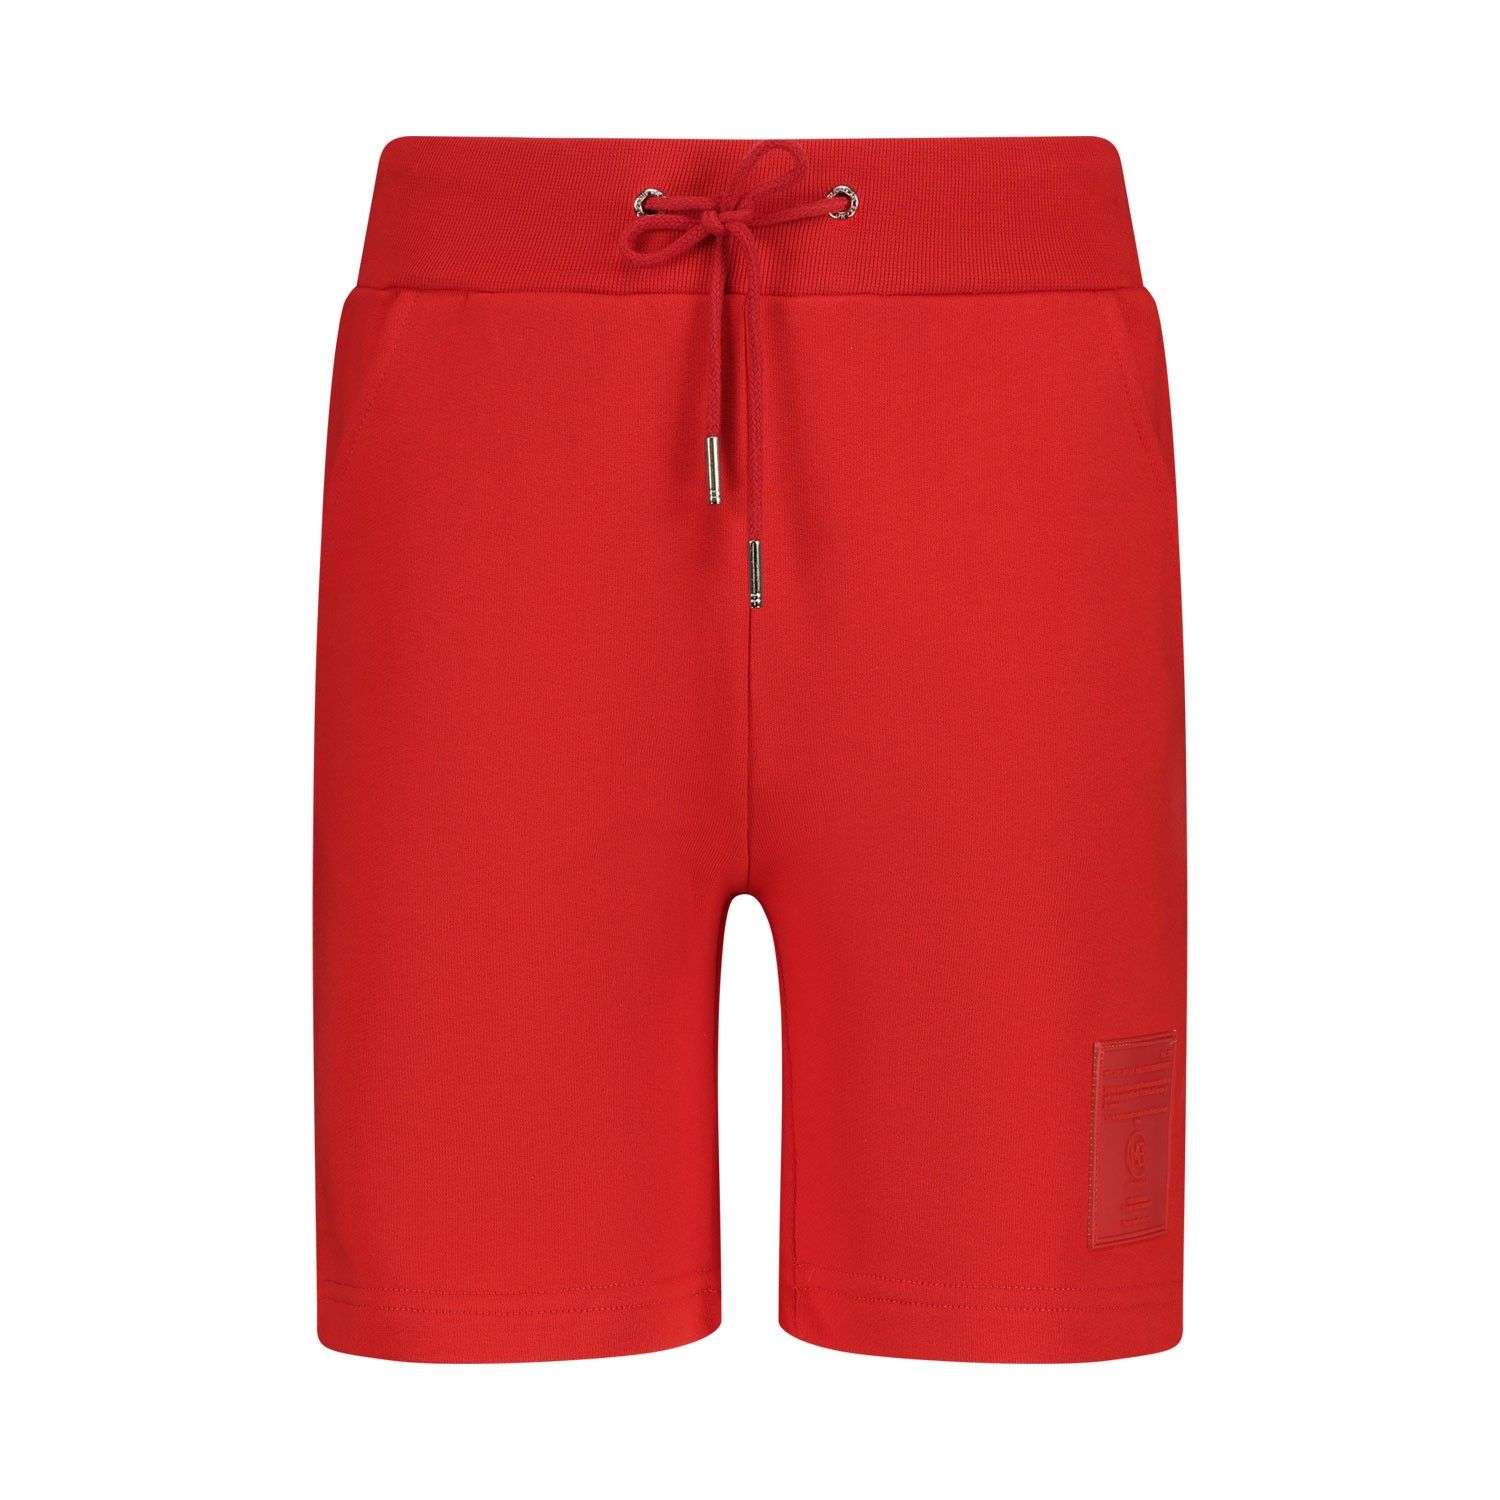 Afbeelding van My Brand 007A0006 kinder shorts rood